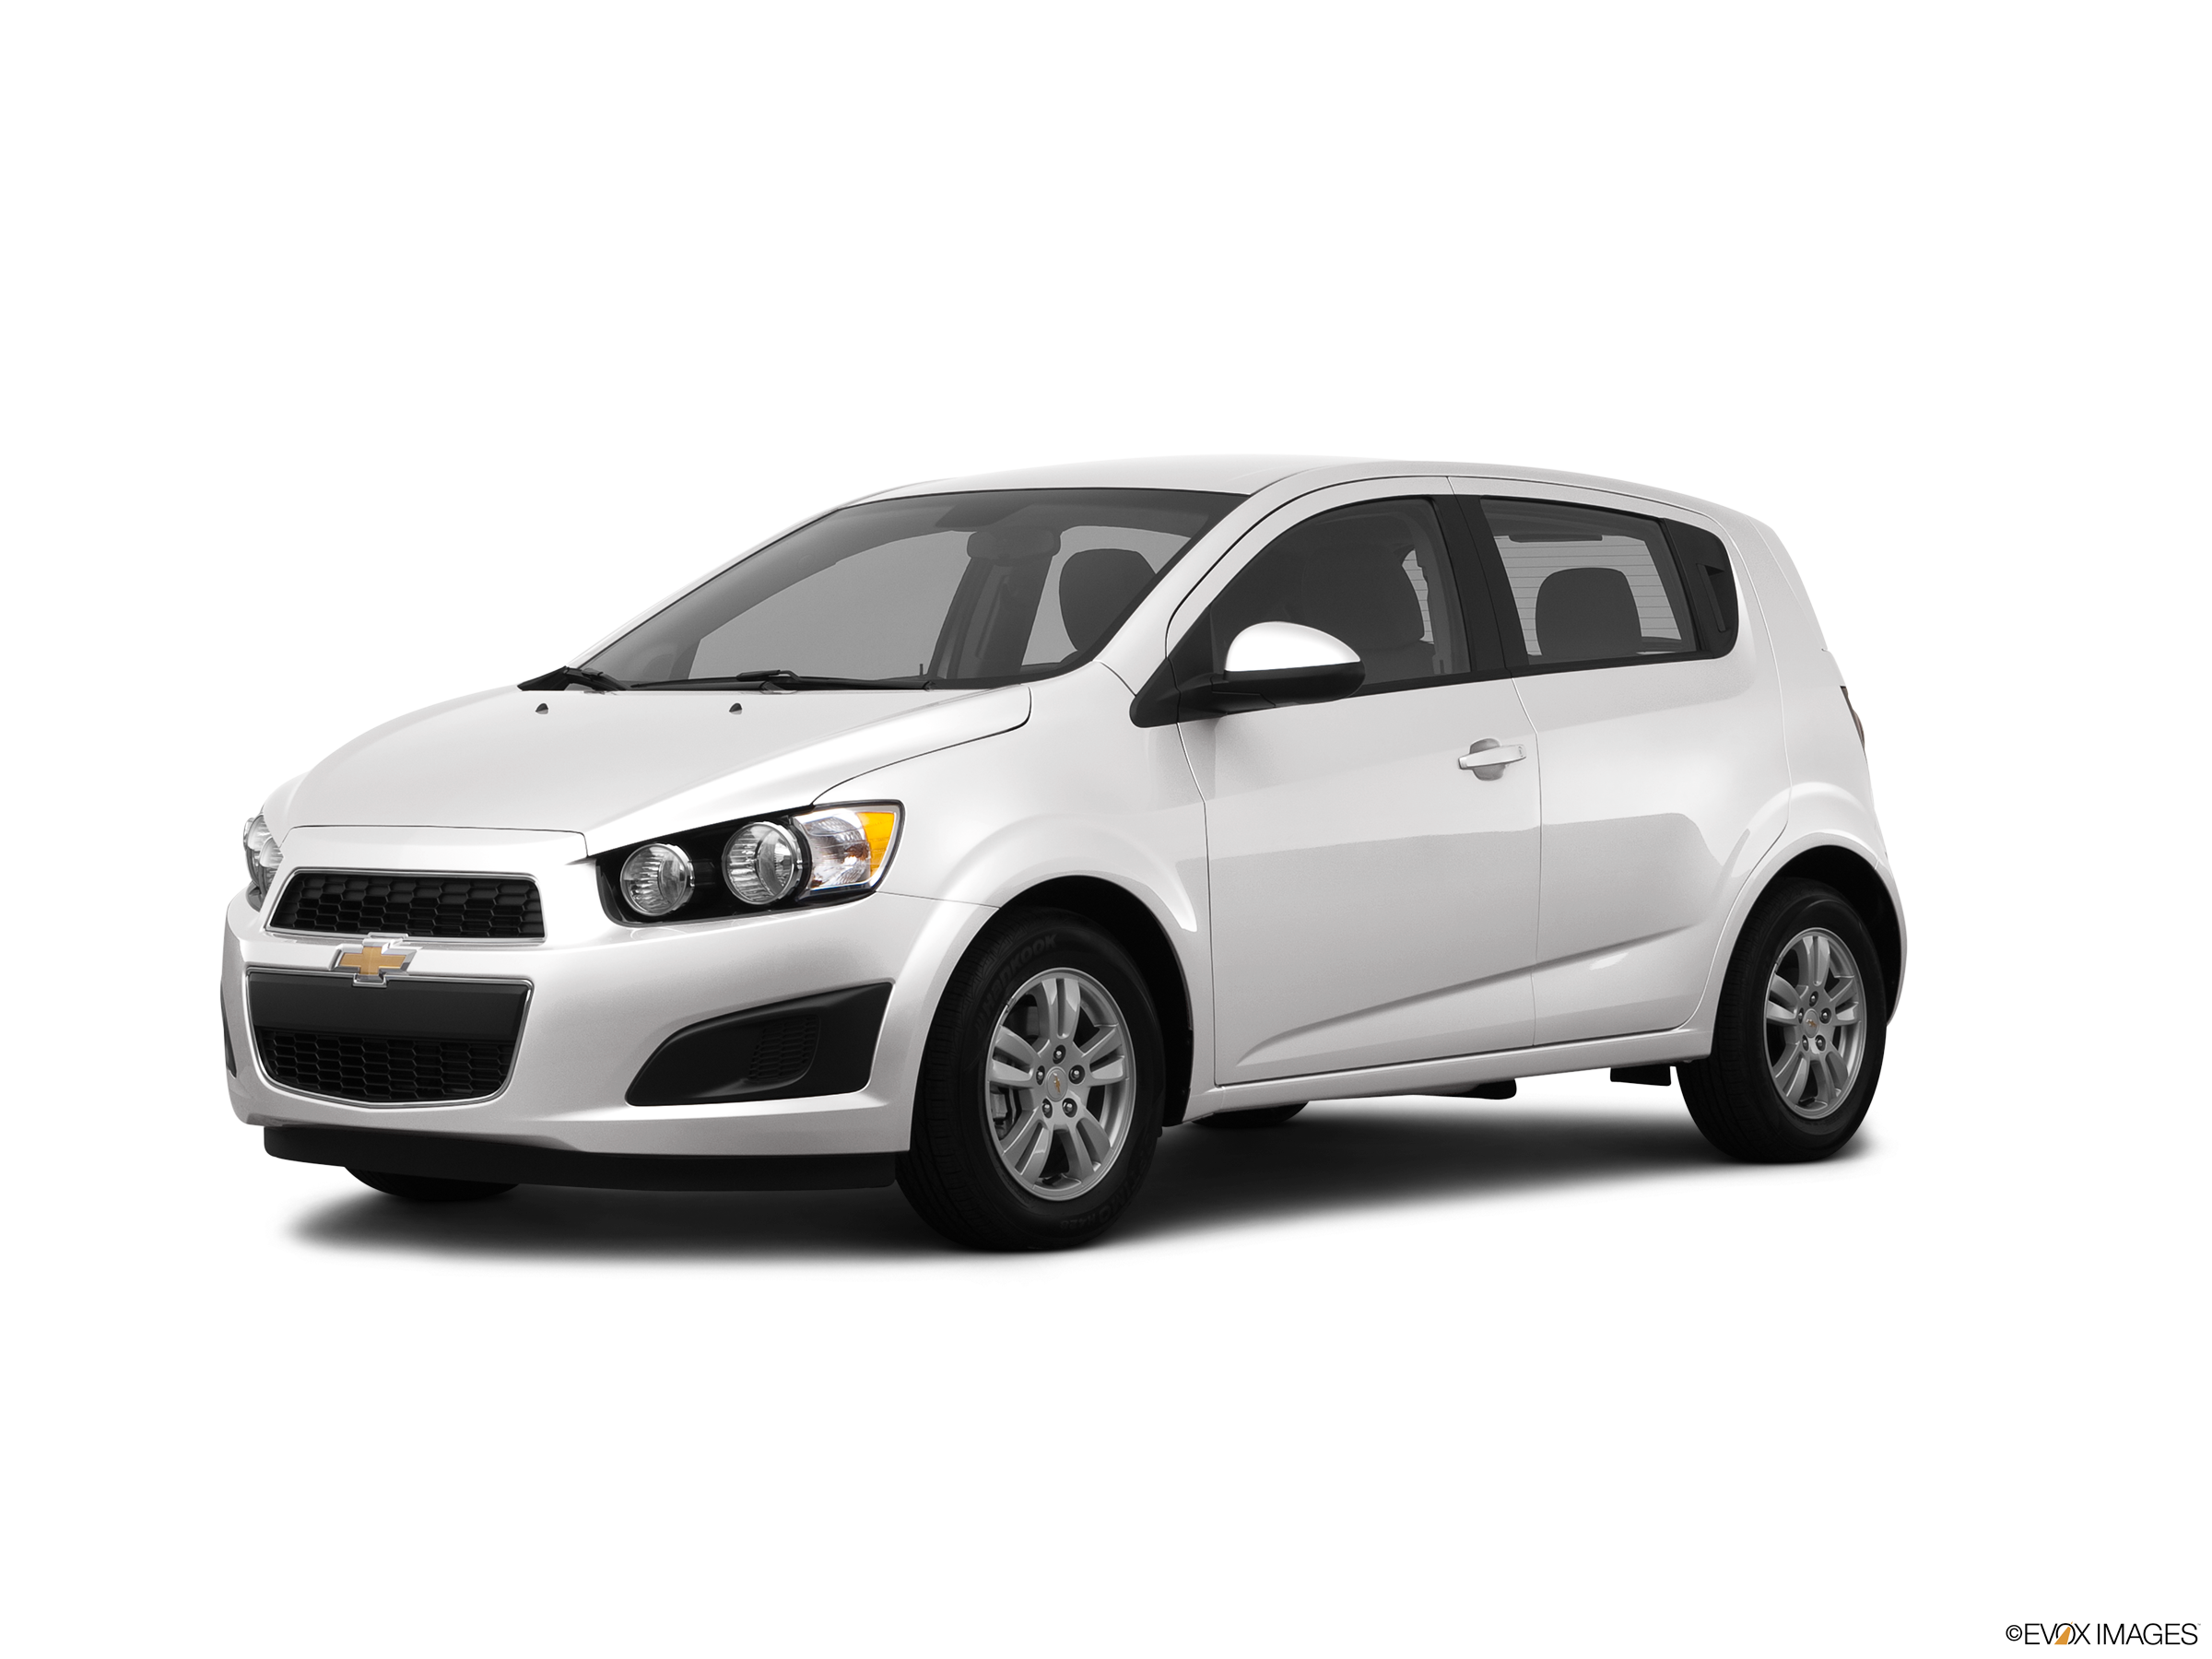 2012 Chevrolet Sonic Values Cars For Sale Kelley Blue Book